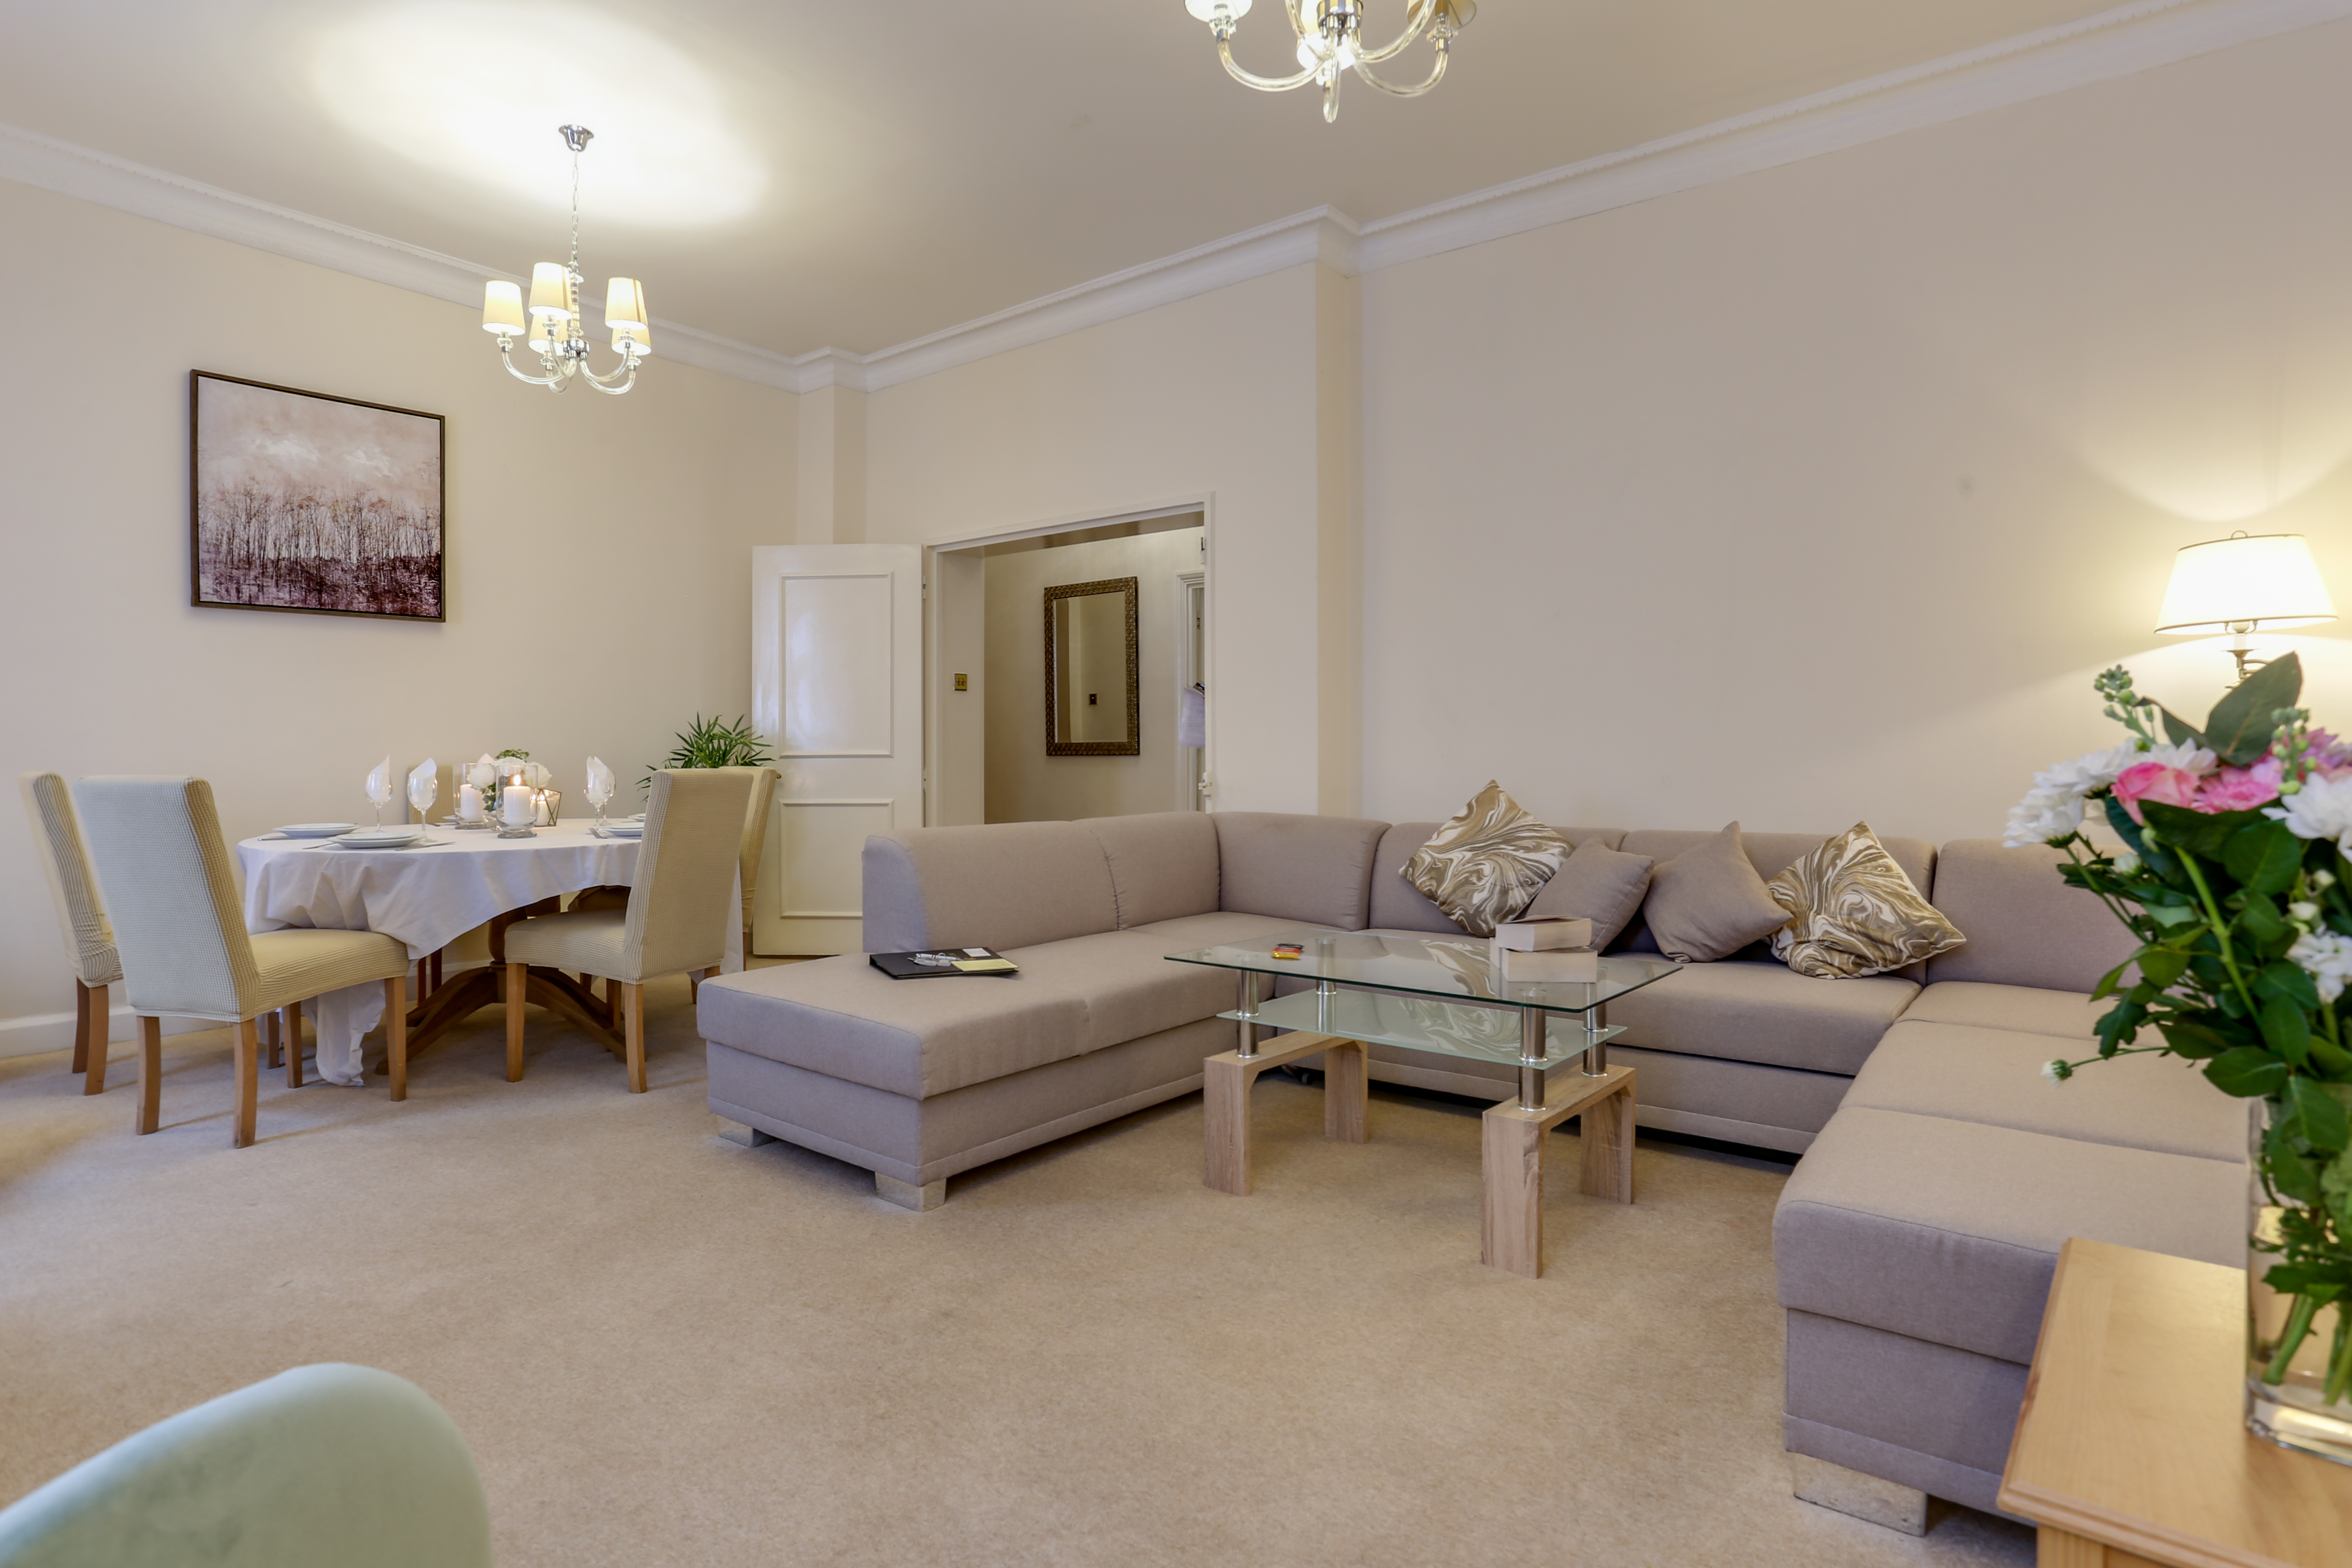 Flat 1, Shaw house – 6 Chesterfield Street (6 of 24)